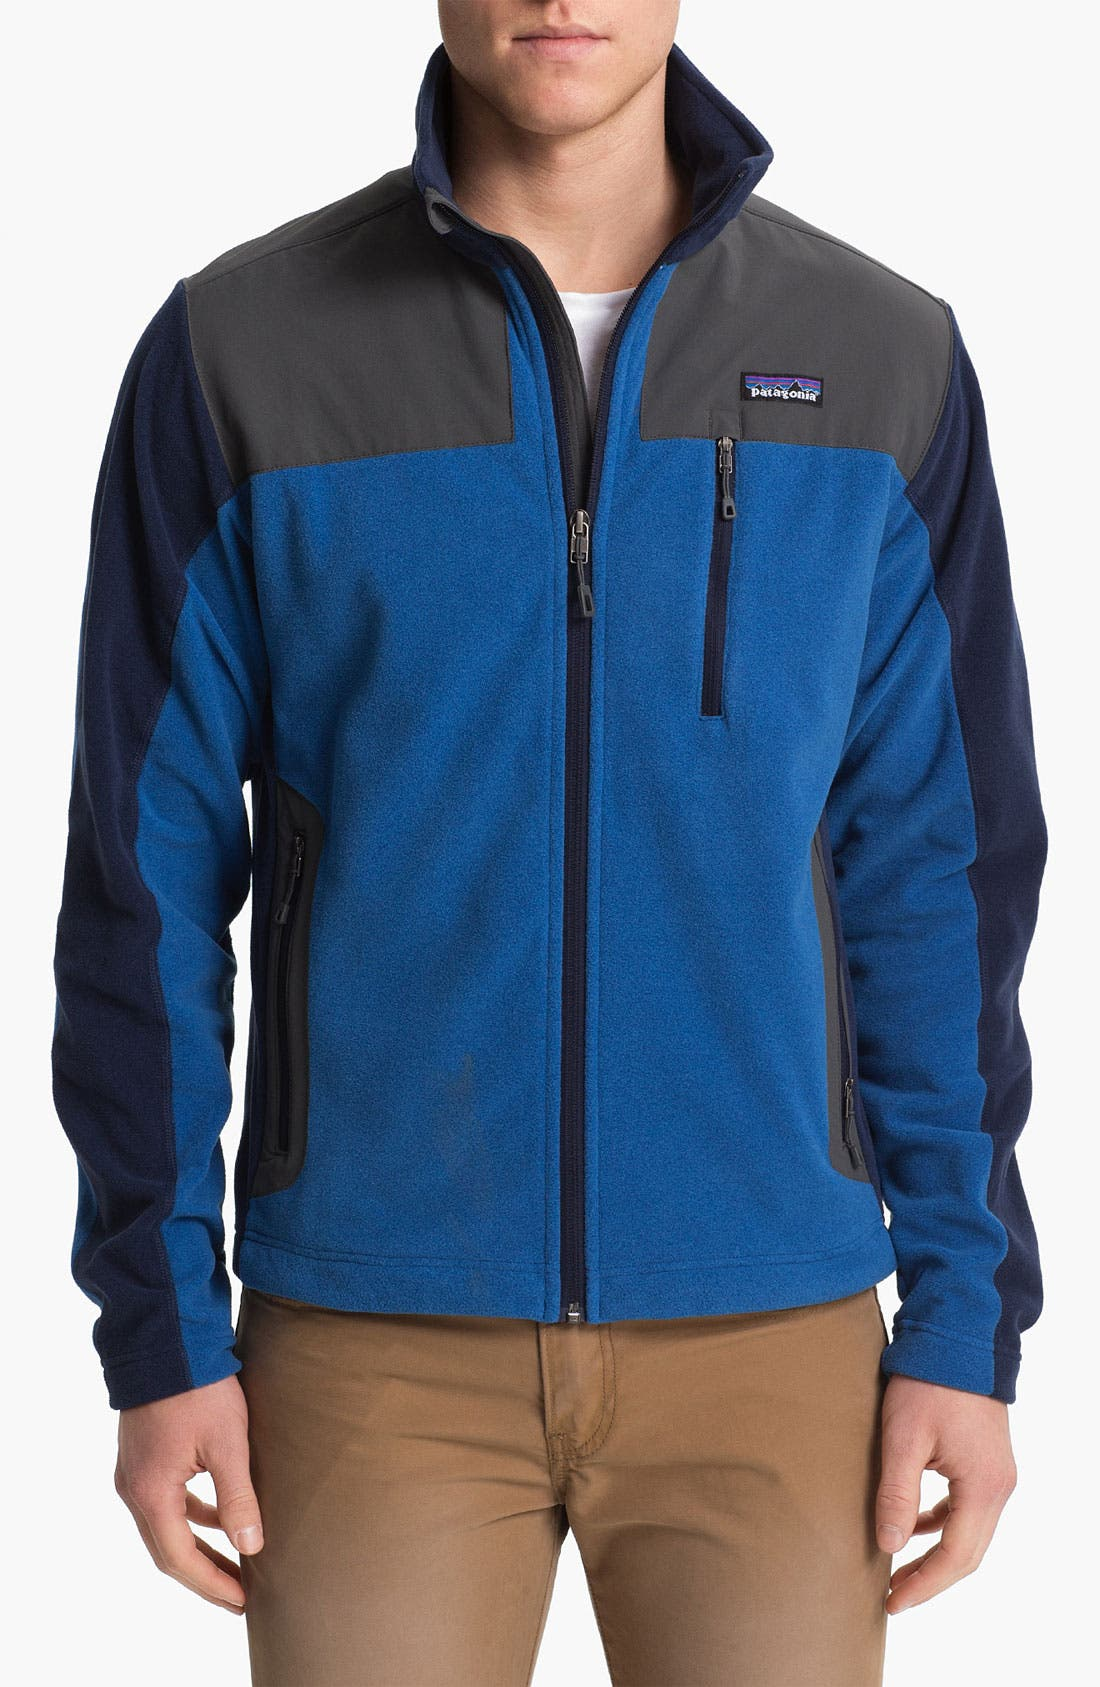 Alternate Image 1 Selected - Patagonia 'Cedars' Zip Fleece Jacket